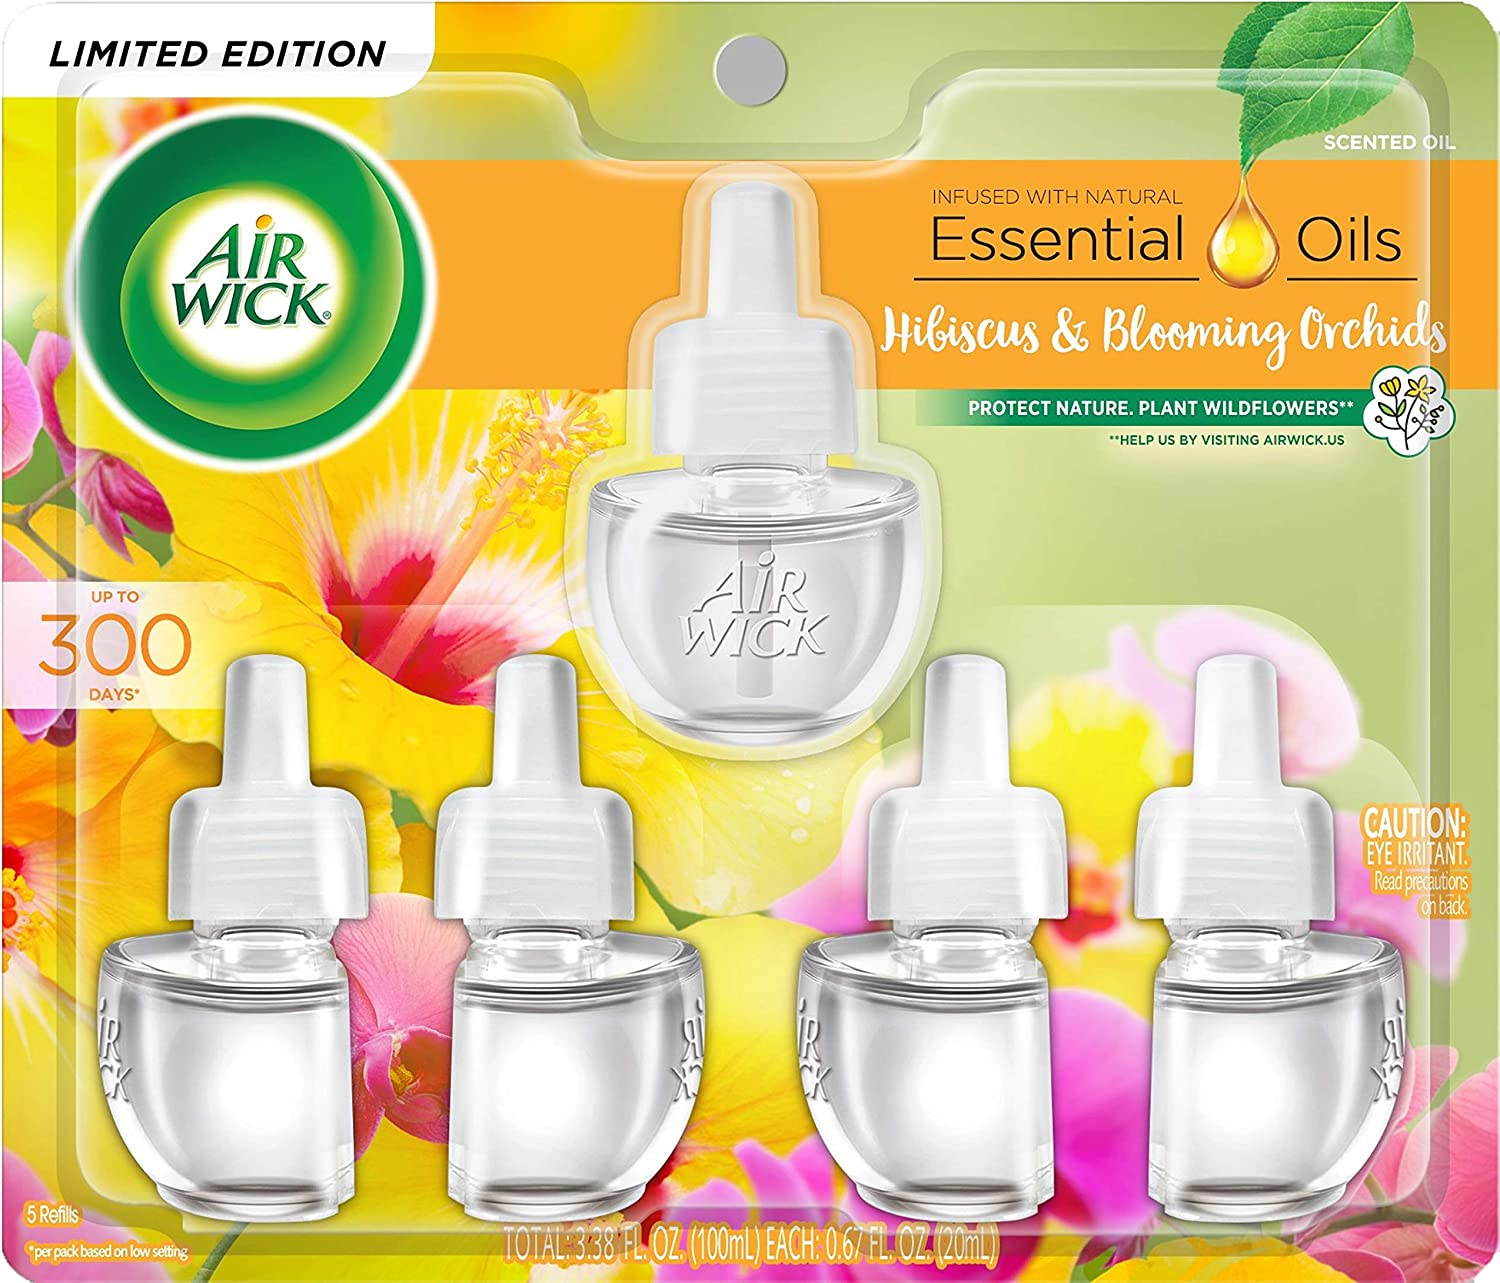 Air Wick Plug in Scented Oil Refill Freshener Essential Oils, Hibiscus and Blooming Orchids, 5 Count